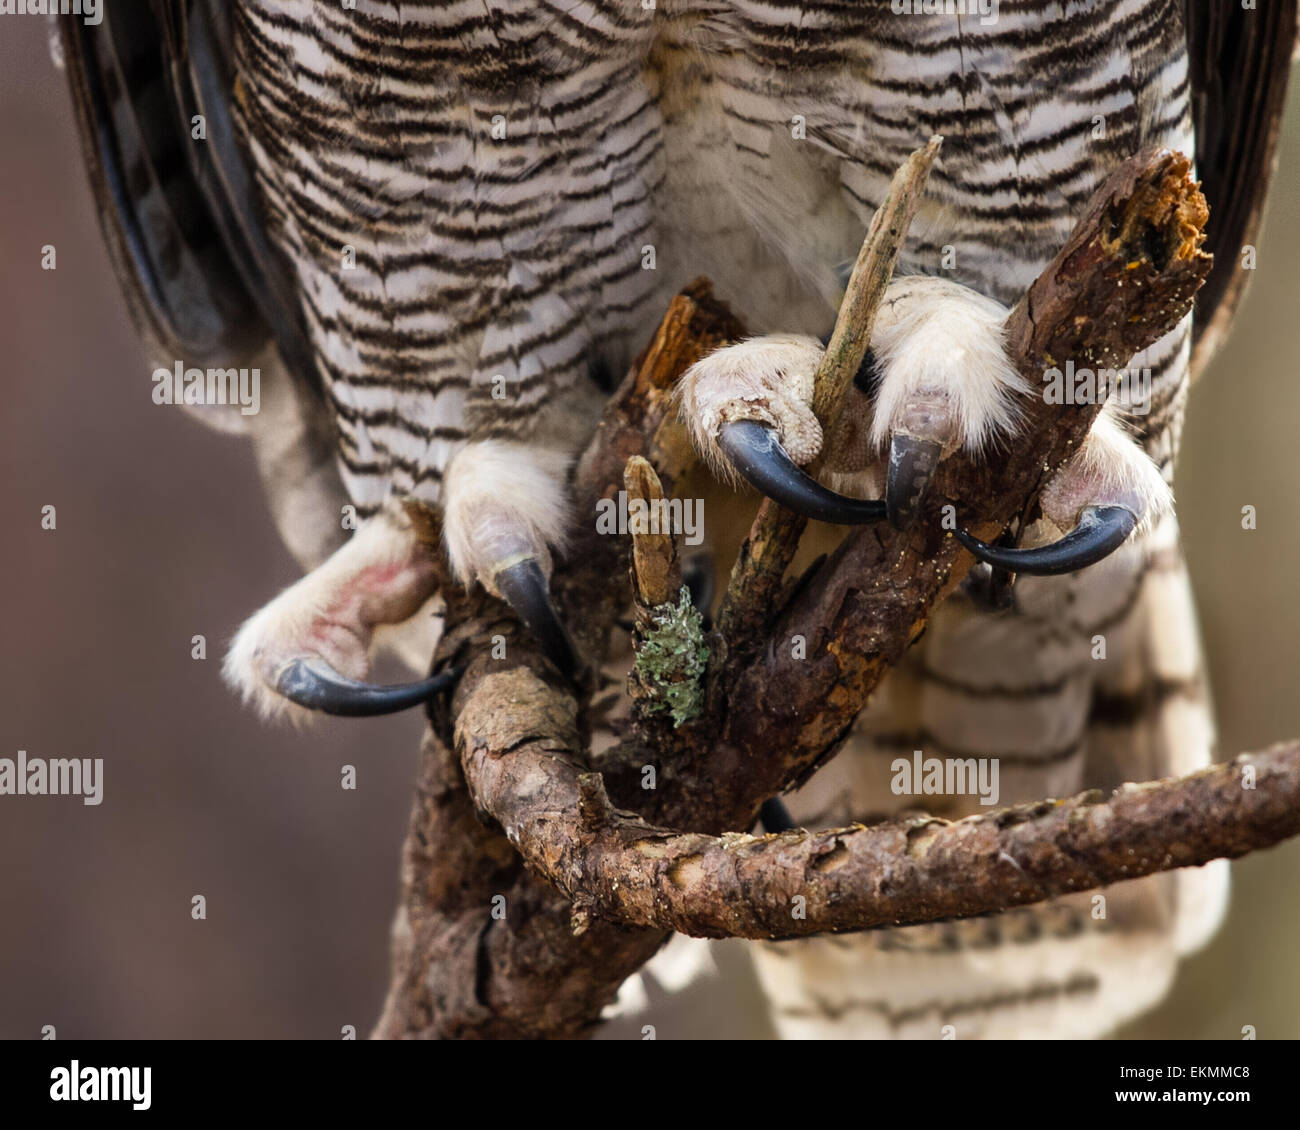 A closeup of a great horned owls talons. - Stock Image